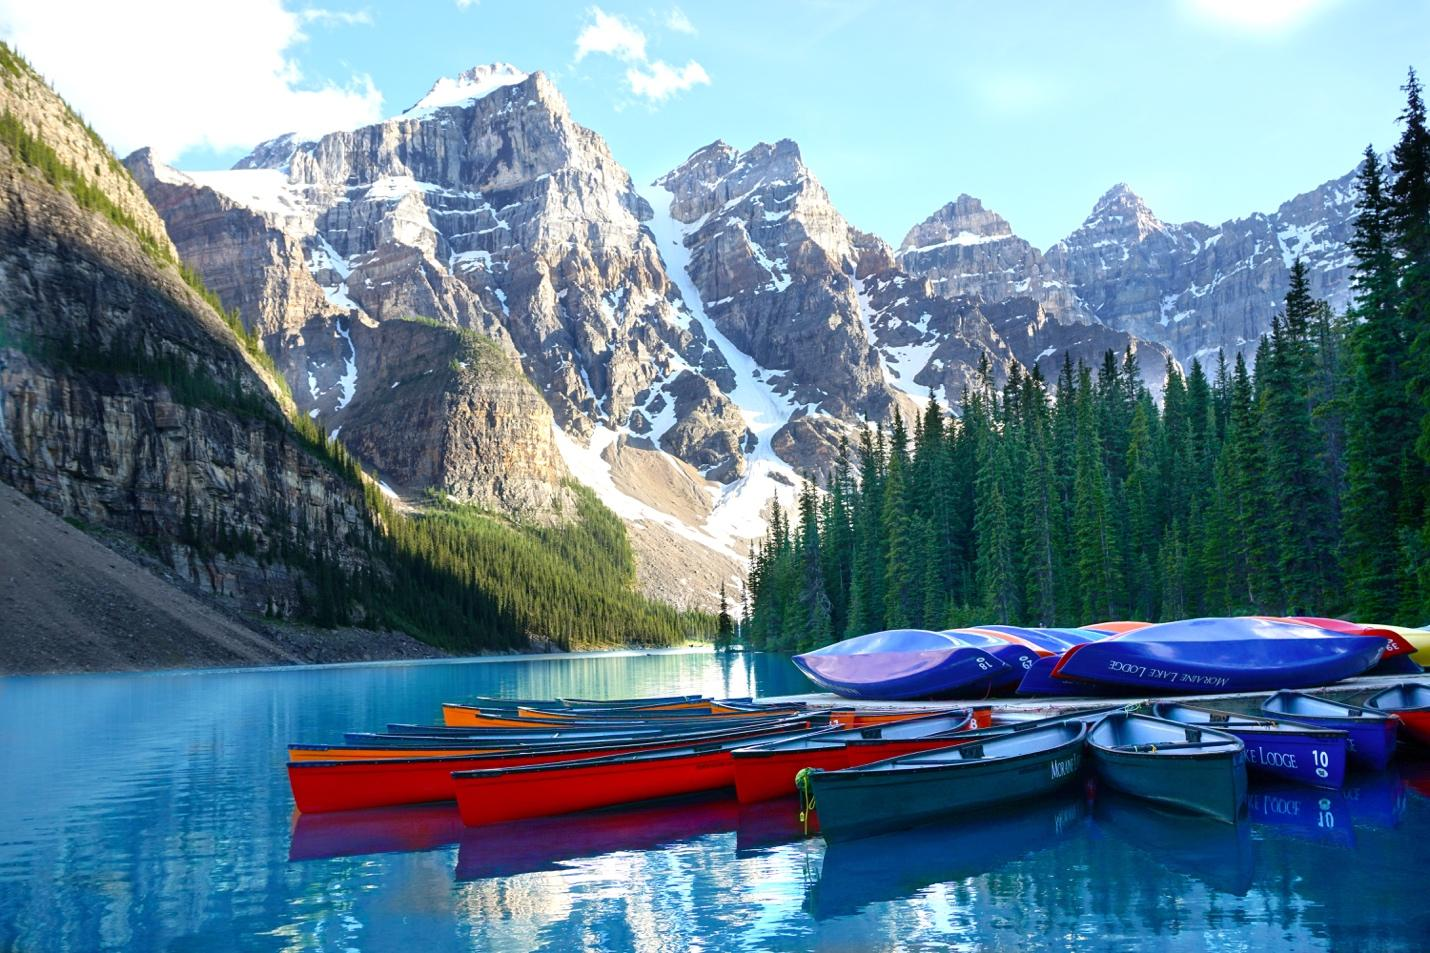 A picture containing sky, mountain, outdoor, water  Description automatically generated